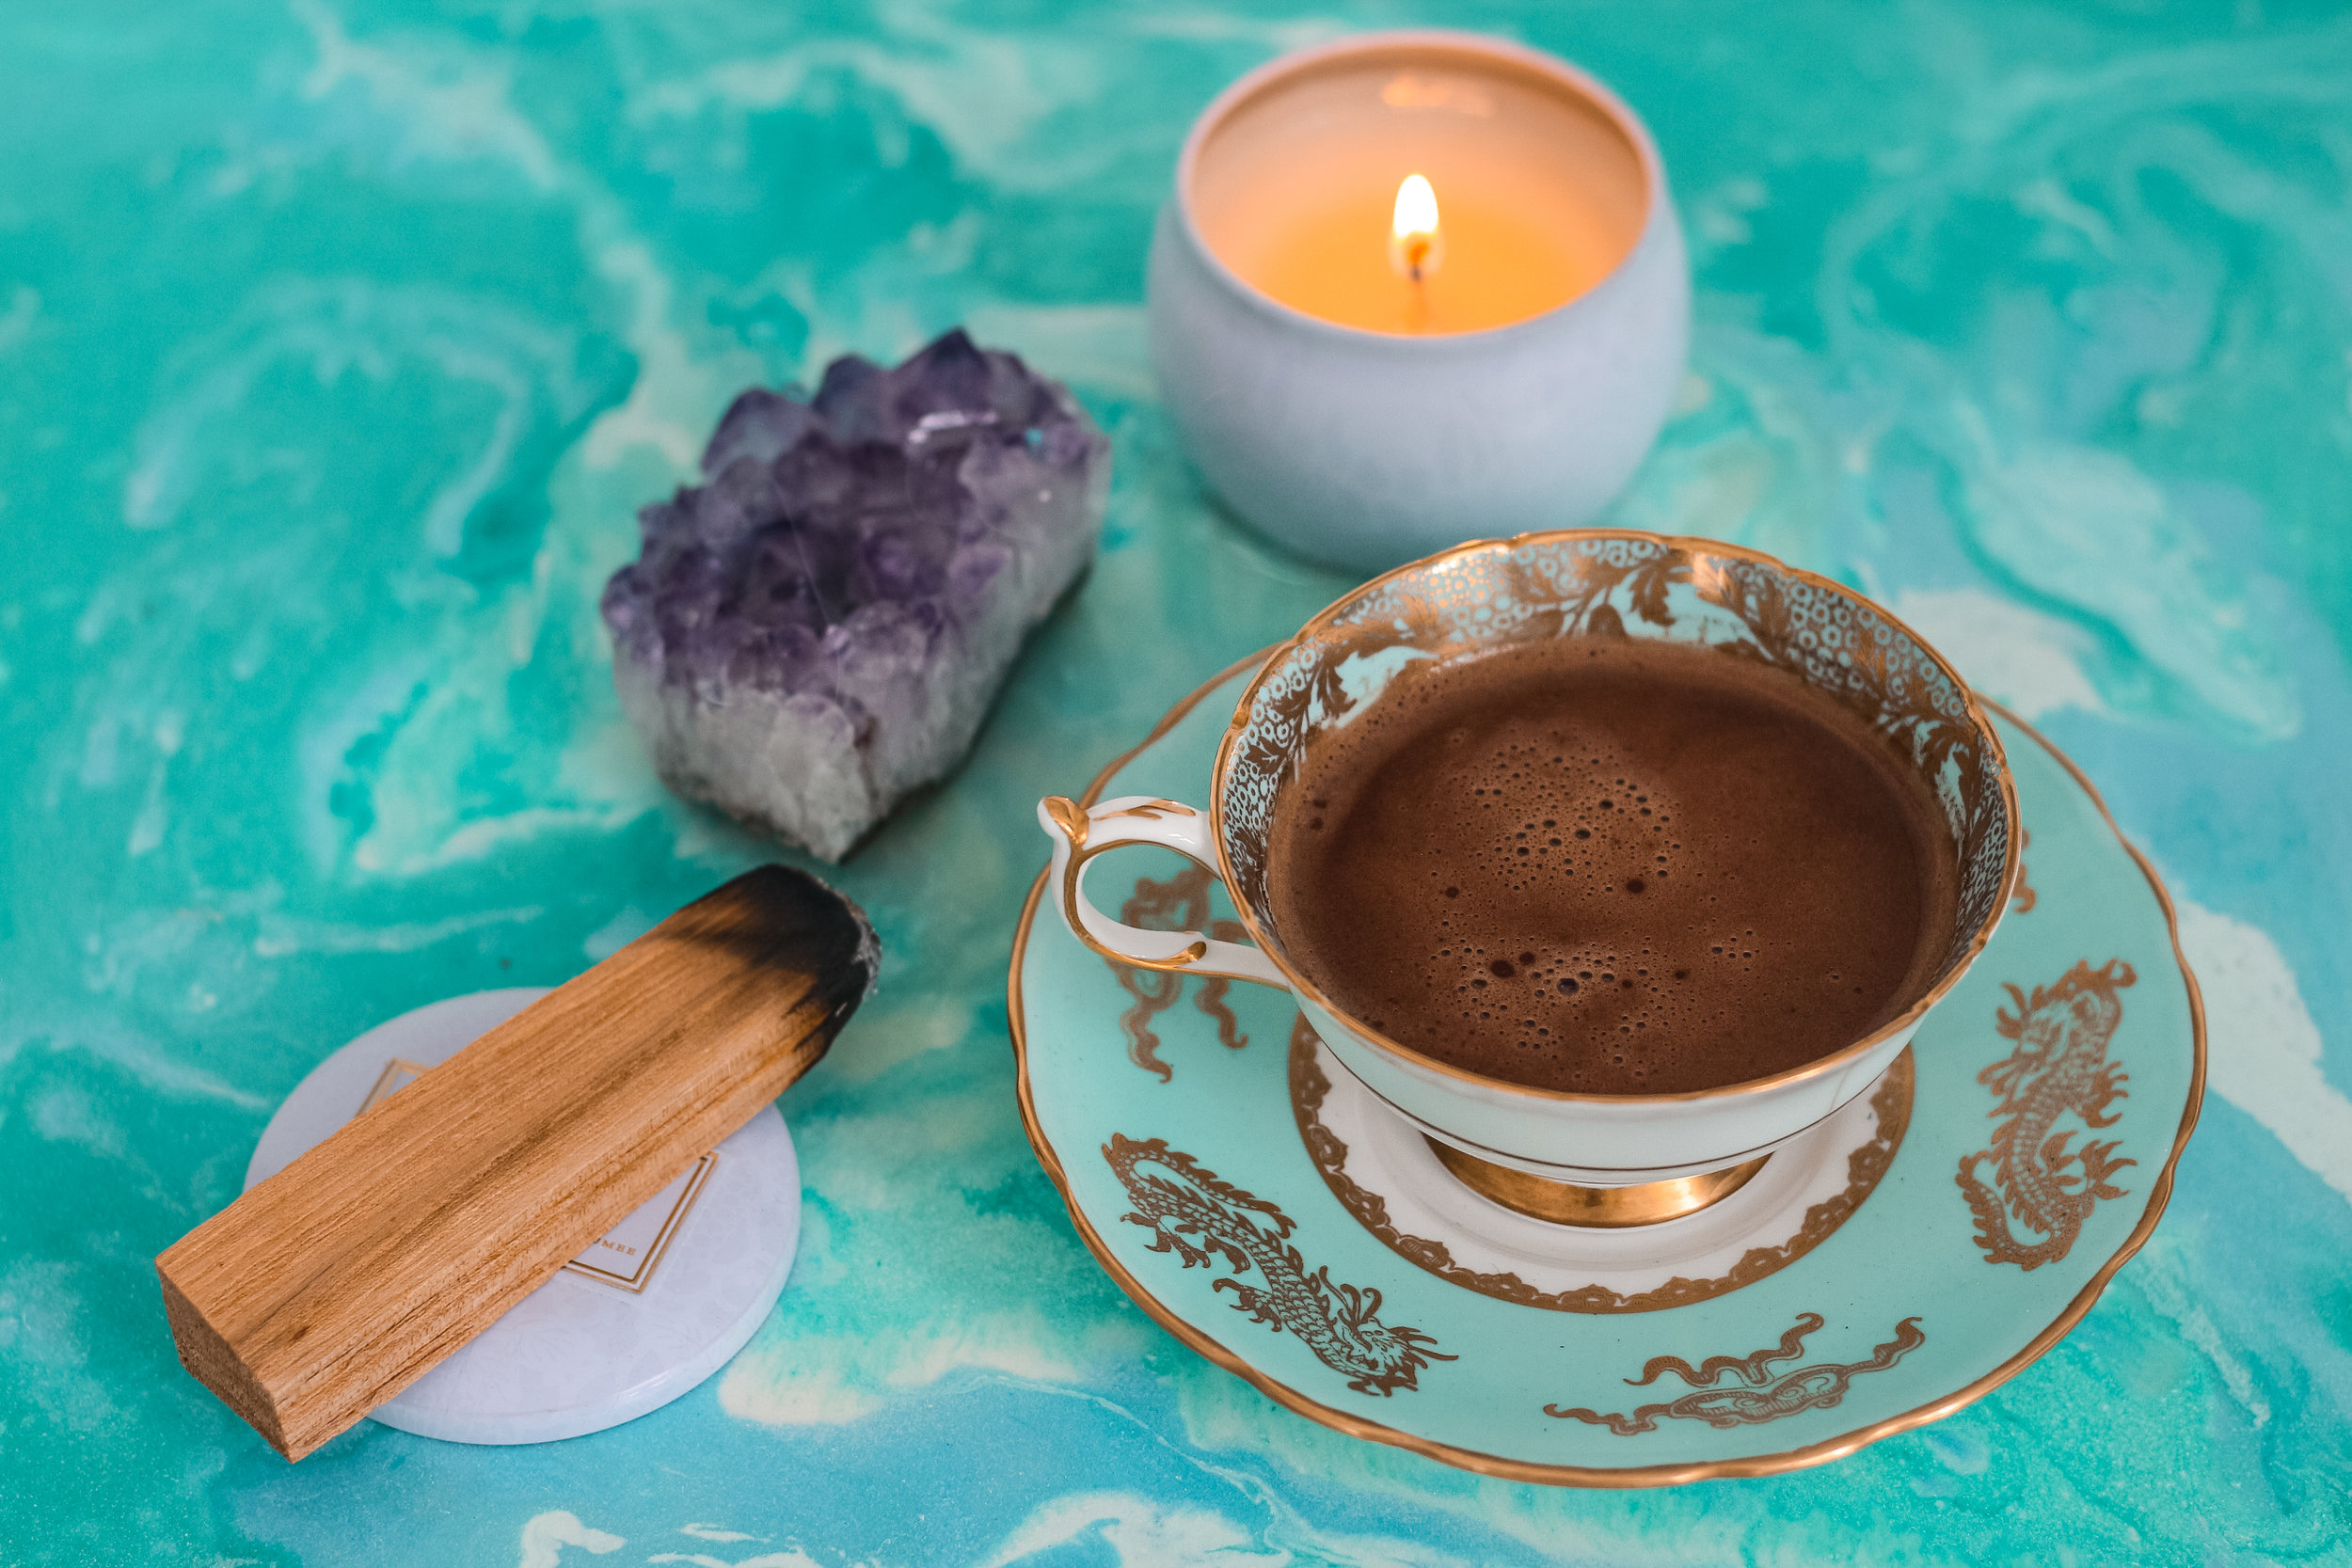 RITUAL - Start each day with ritual intention